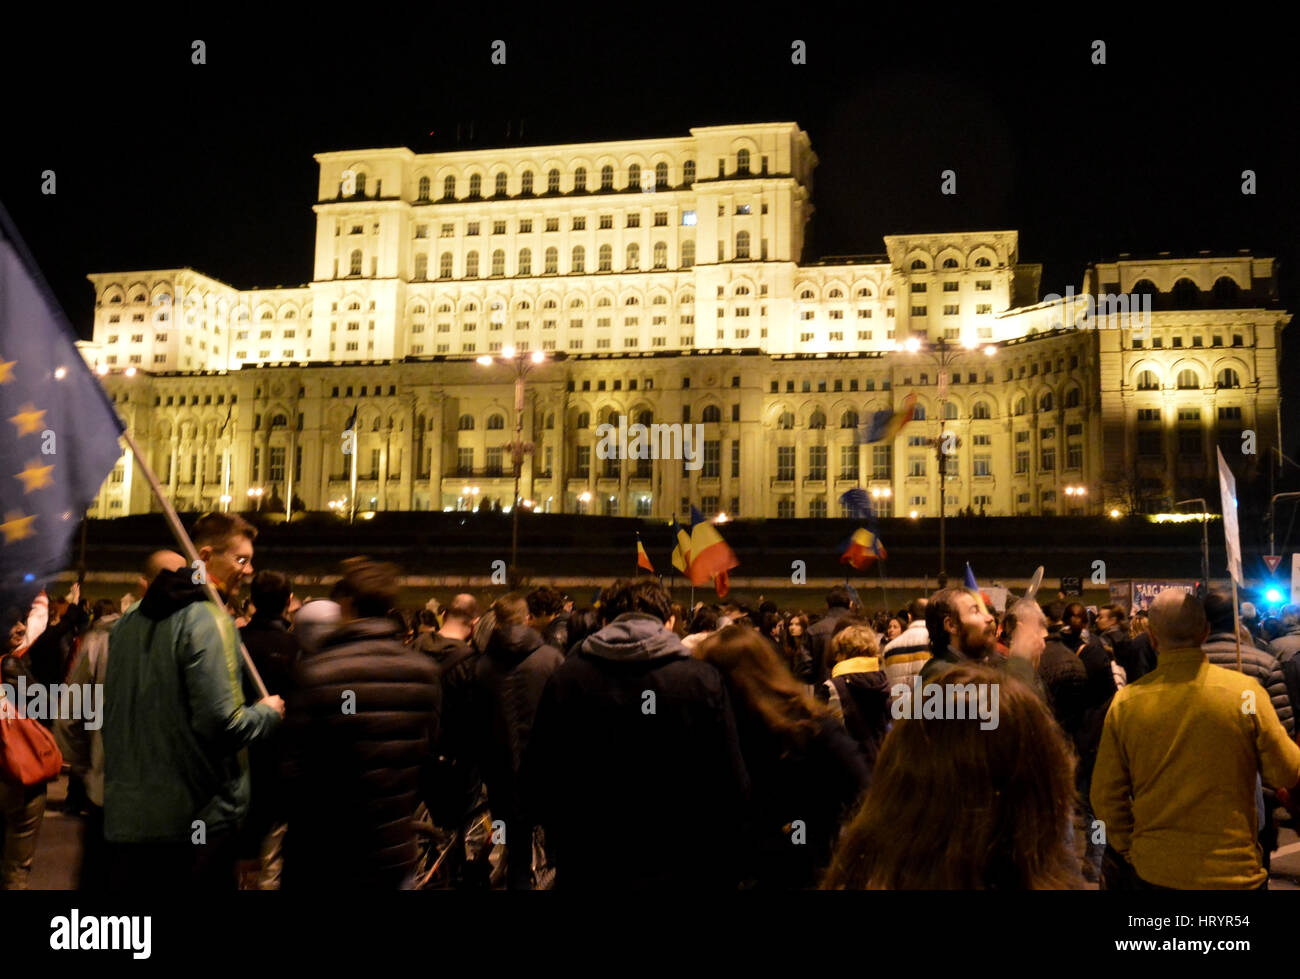 Bucharest, Romania 05th Mar, 2017 A fifth Sunday of anti-government protests saw 7000 people march through the streets - Stock Image